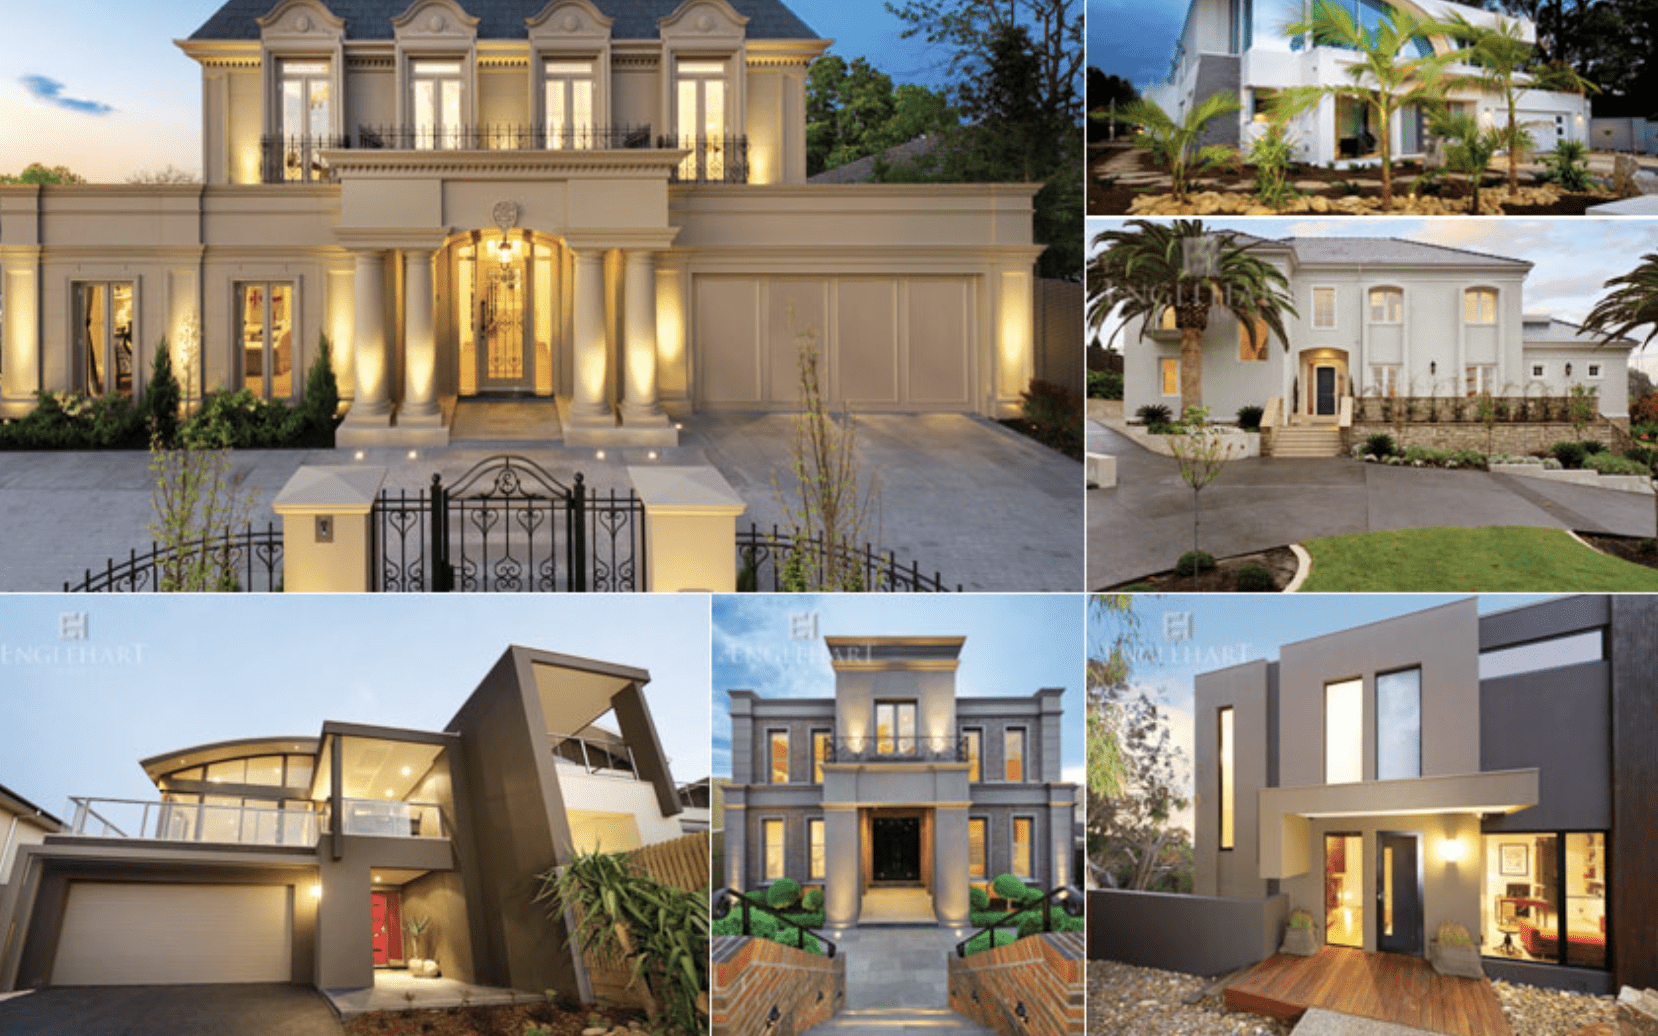 Luxury Home Builders & Planners in Melbourne to Build the Highest Quality and Most Impressive Homes